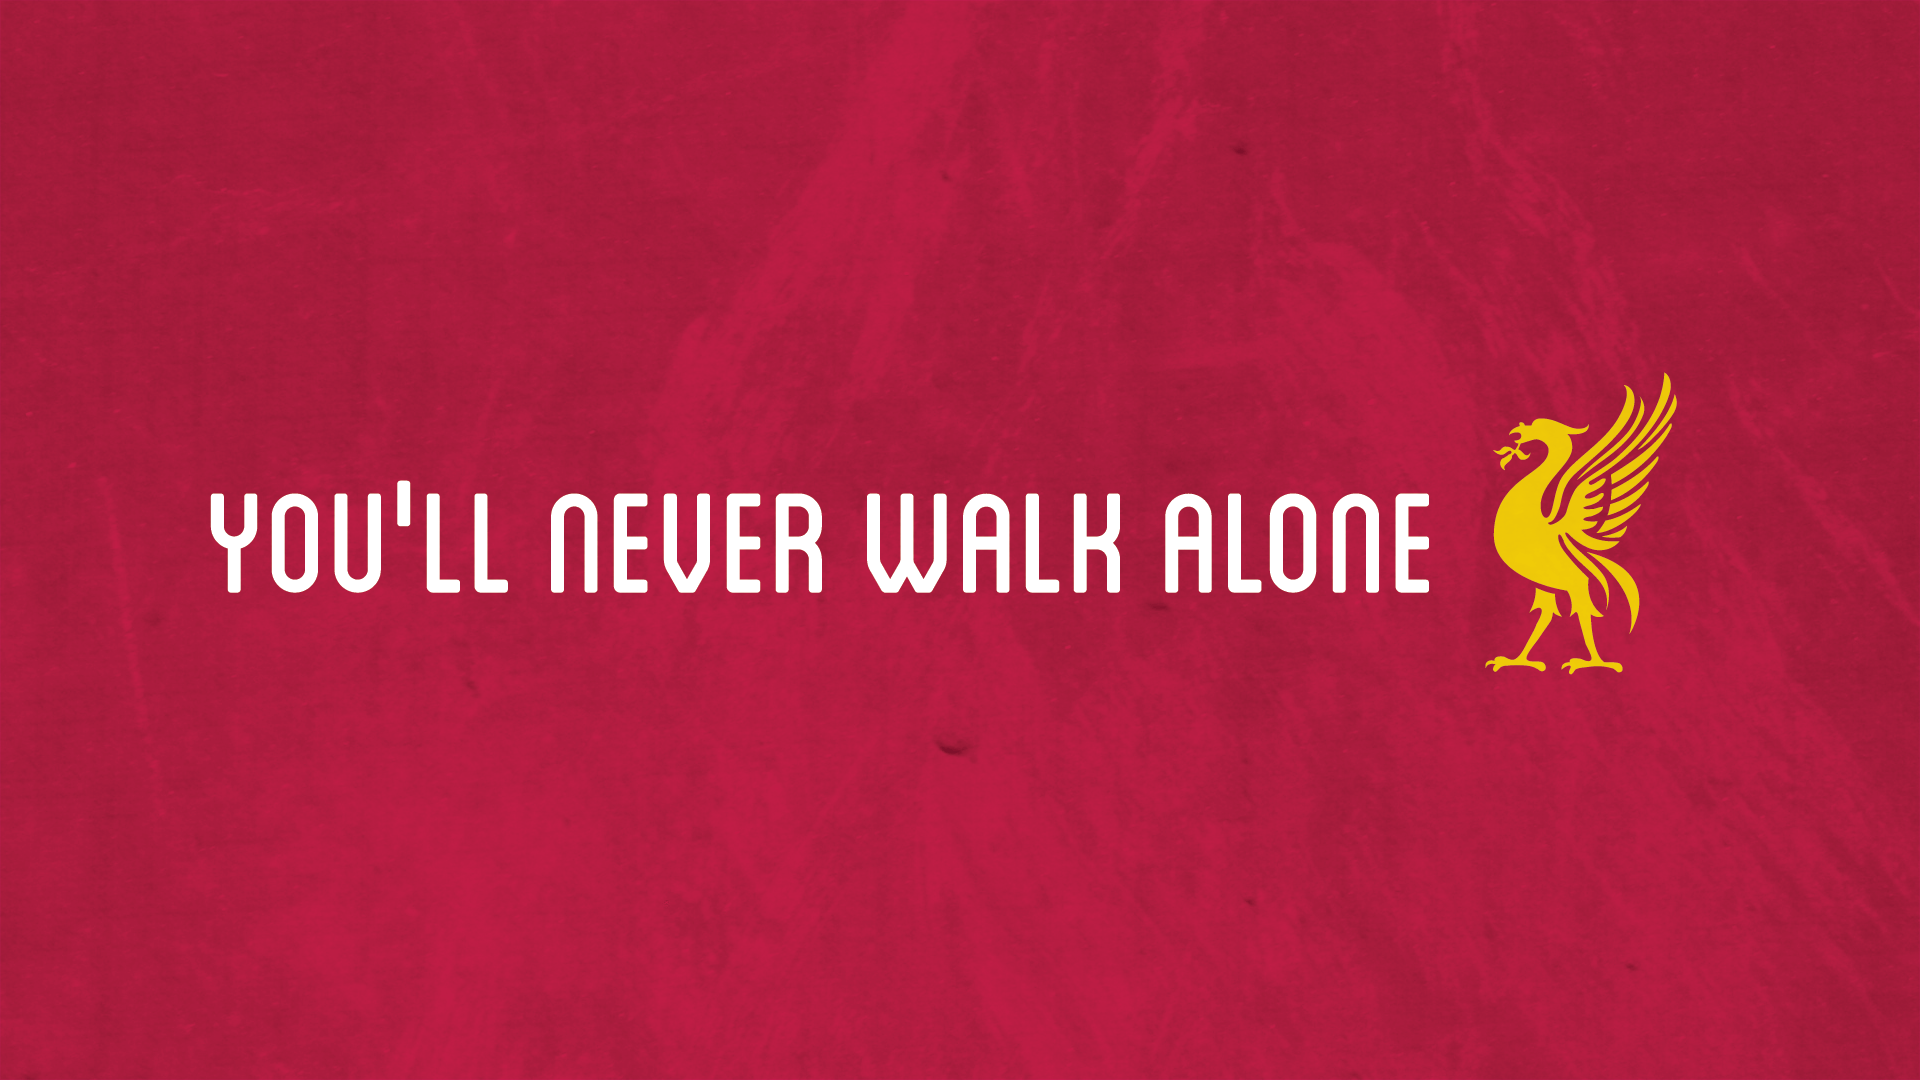 Liverpool Wallpapers 2017 1920x1080